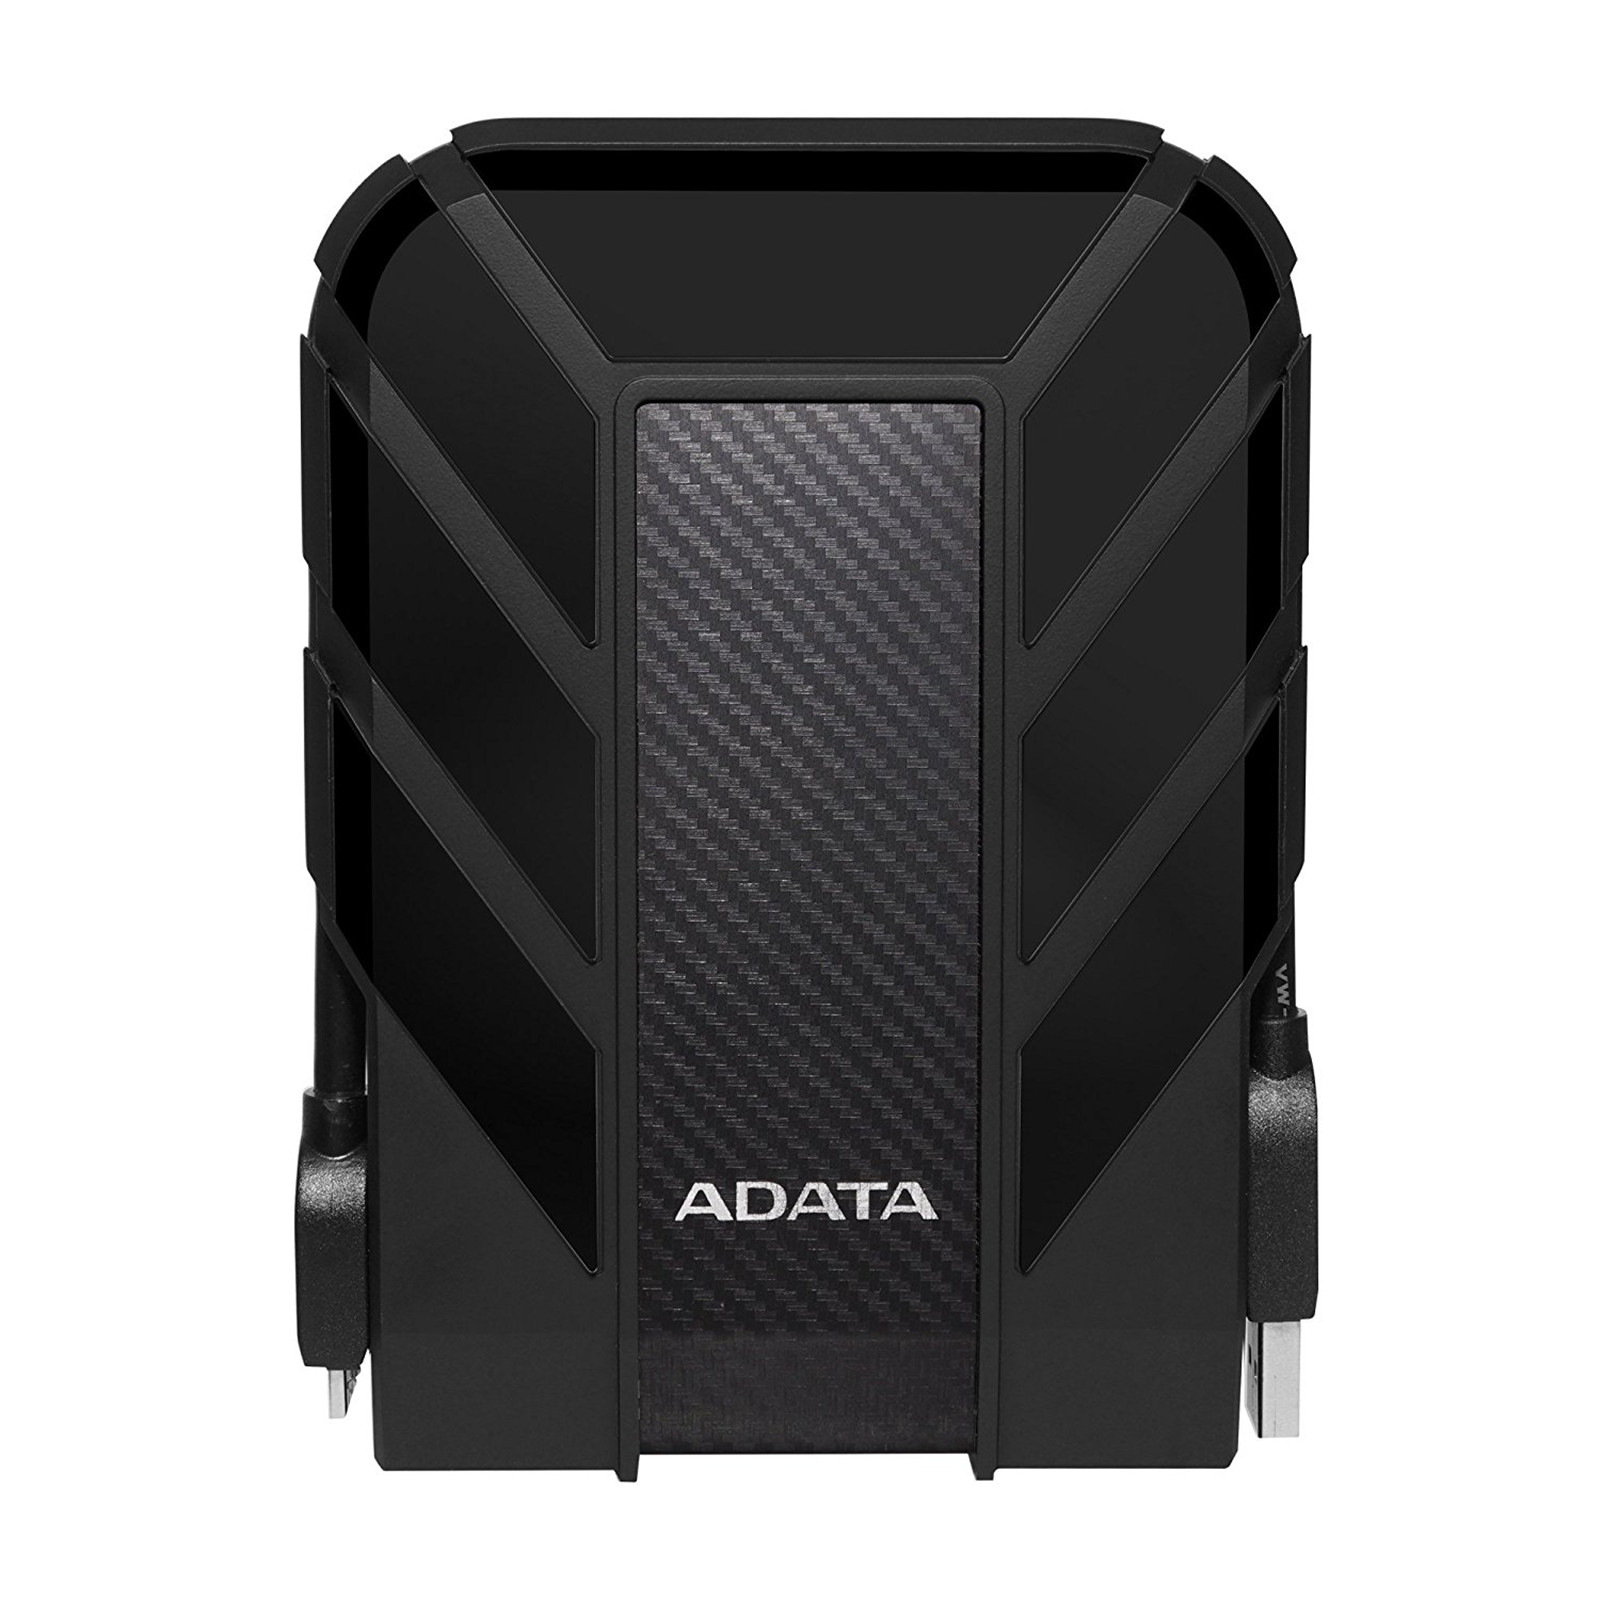 A-Data externe HDD HD710P Black 1TB USB 3.0